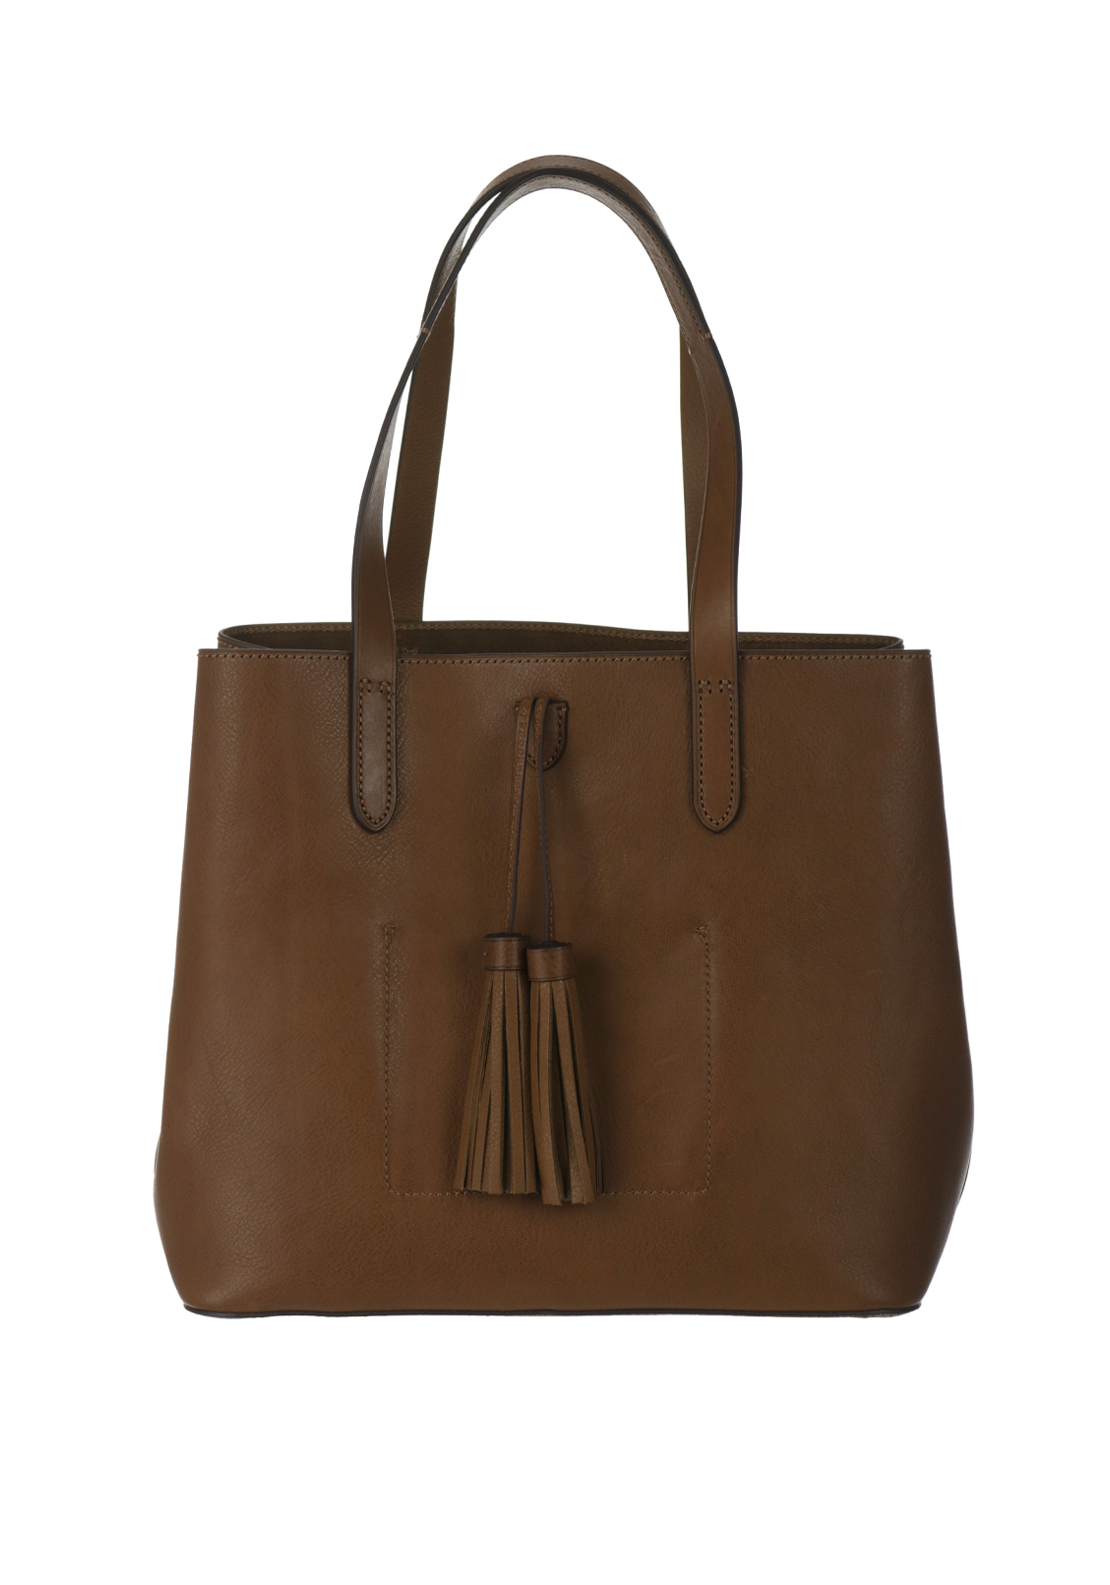 Ralph Lauren Polo Leather Tote Shopper Shoulder Bag, Tan